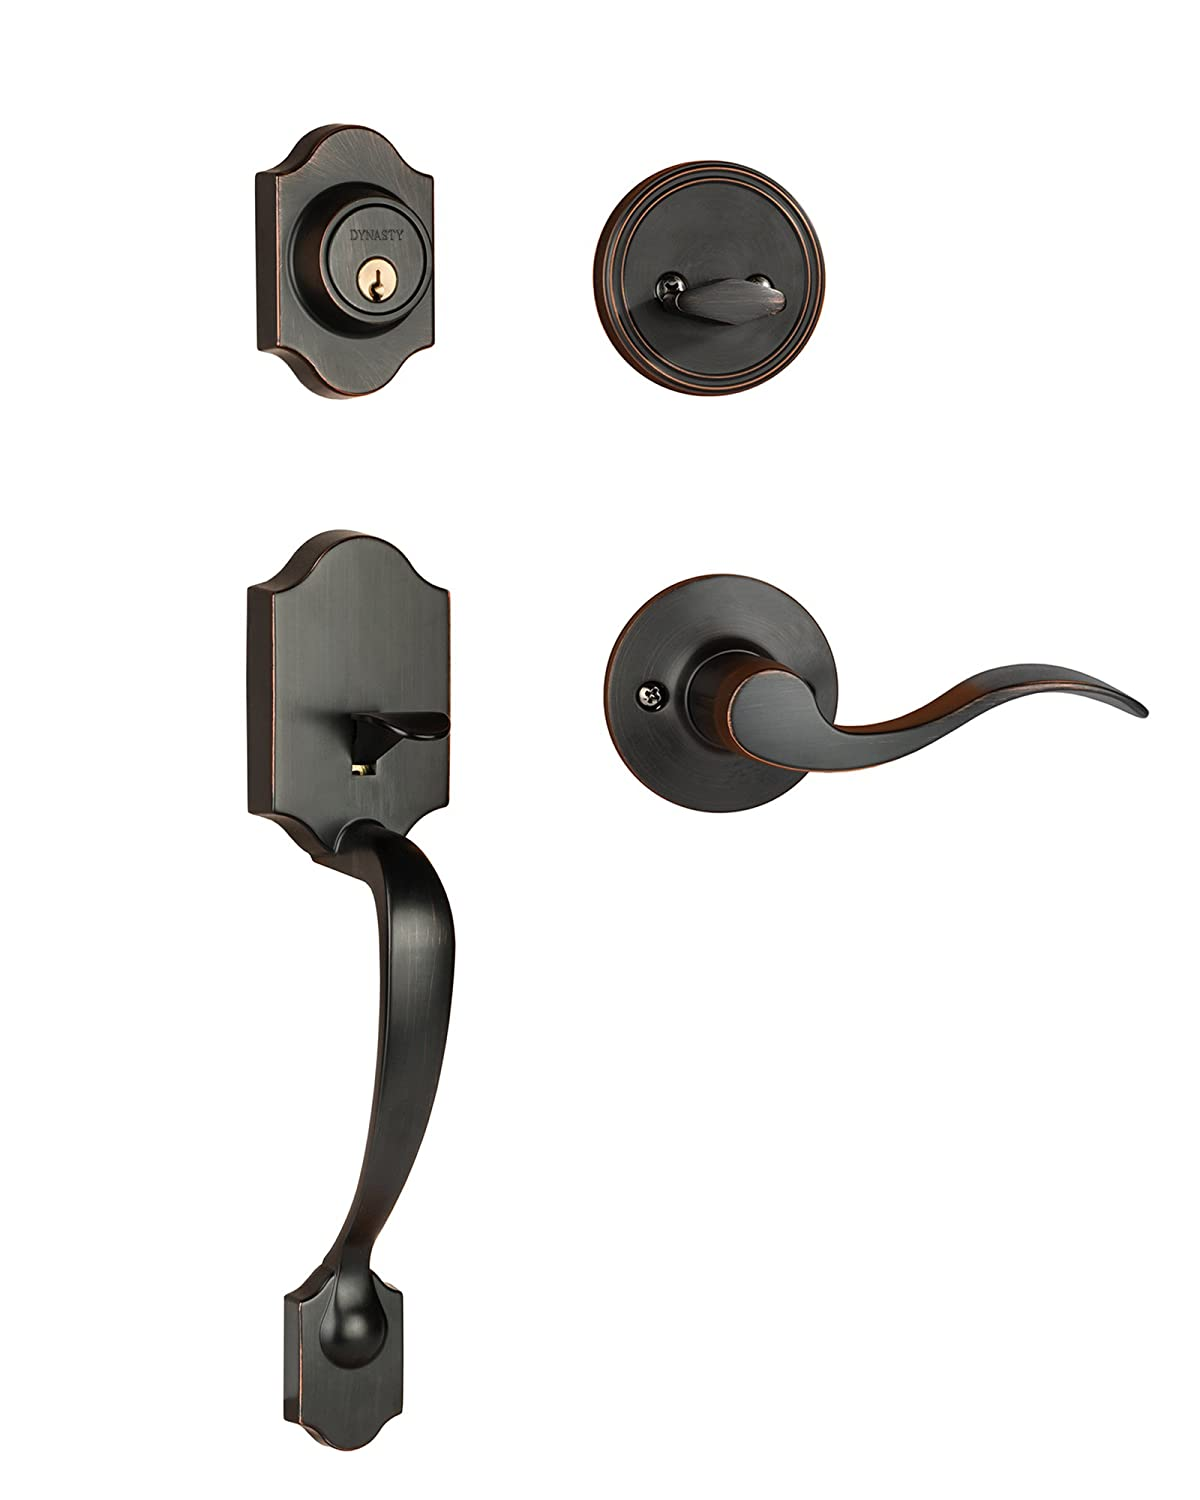 Dynasty Hardware DEN HER 100 12PL Denver Front Door Handleset, Aged Oil  Rubbed Bronze, With Heritage Lever, Left Hand   Door Handles   Amazon.com